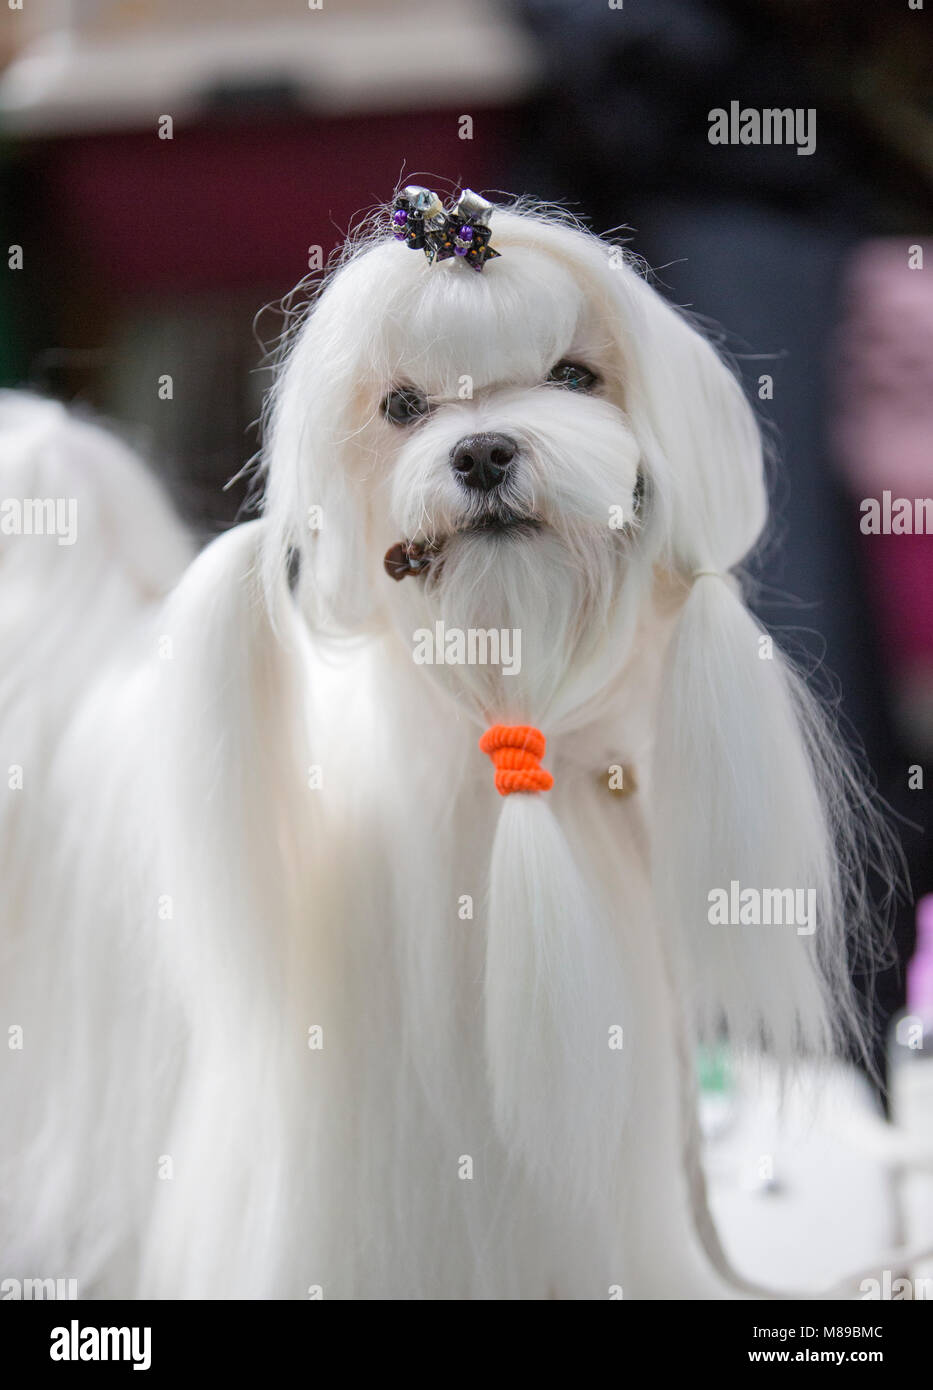 A Maltese dog at Crufts dog show in the UK - Stock Image